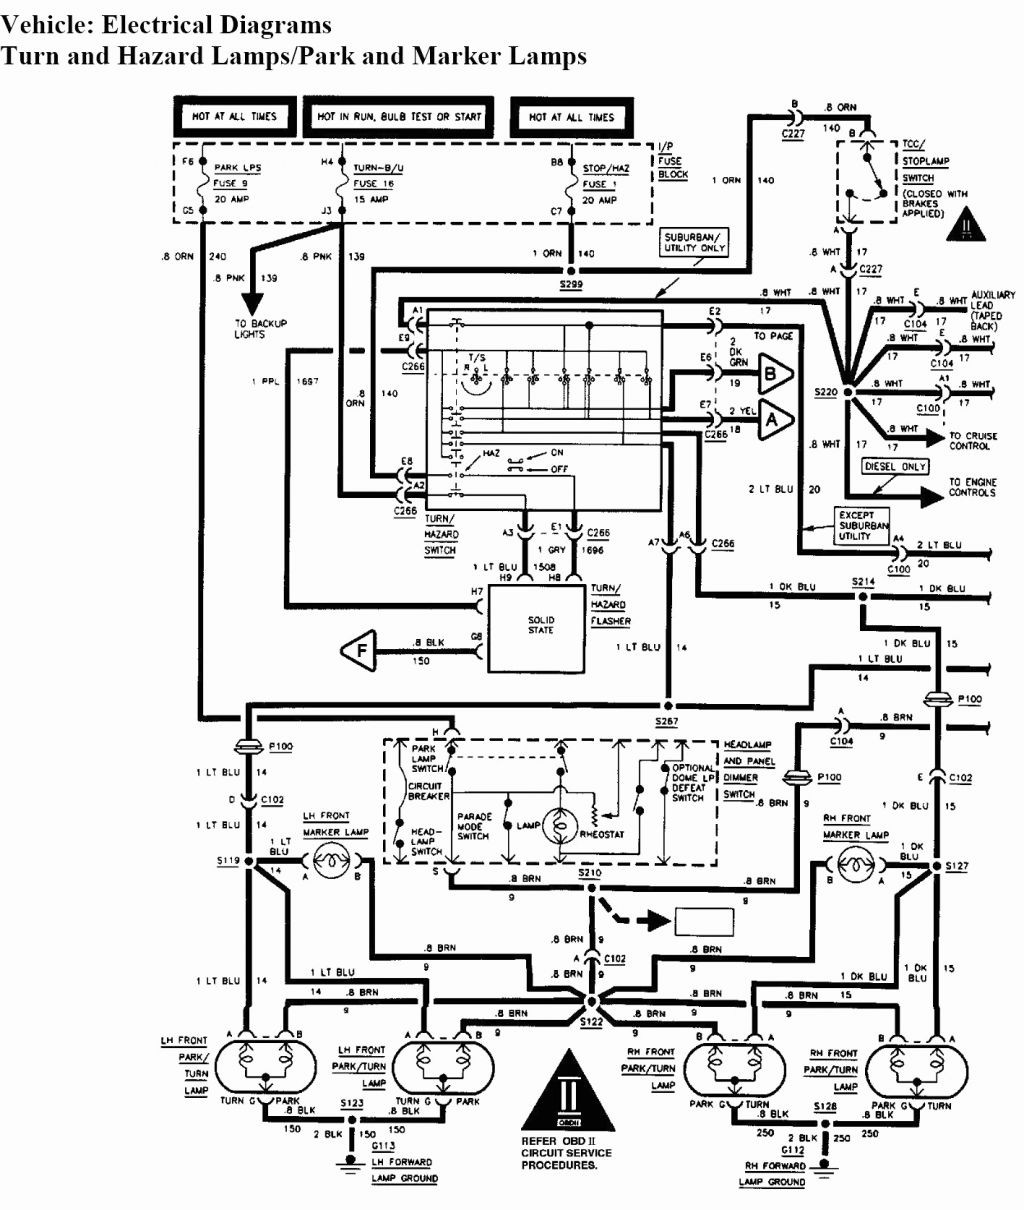 Elegant Pollak 12 705 Wiring Diagram Image A Wall Outlet Adapter Diagrams 4 Prong Auto Instructions